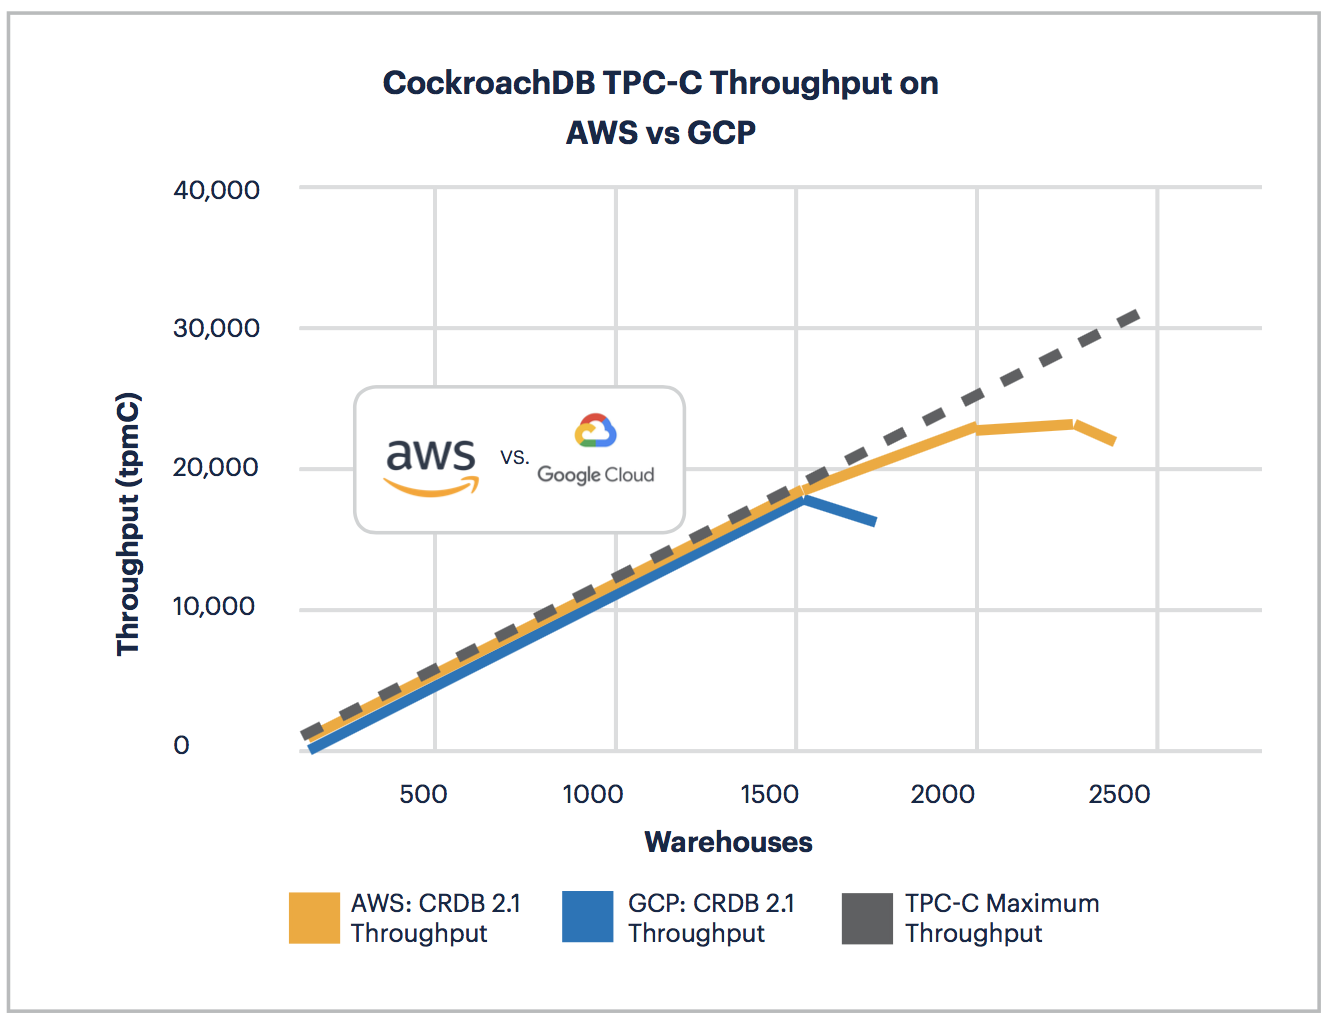 AWS vs GCP: TPC-C Throughput